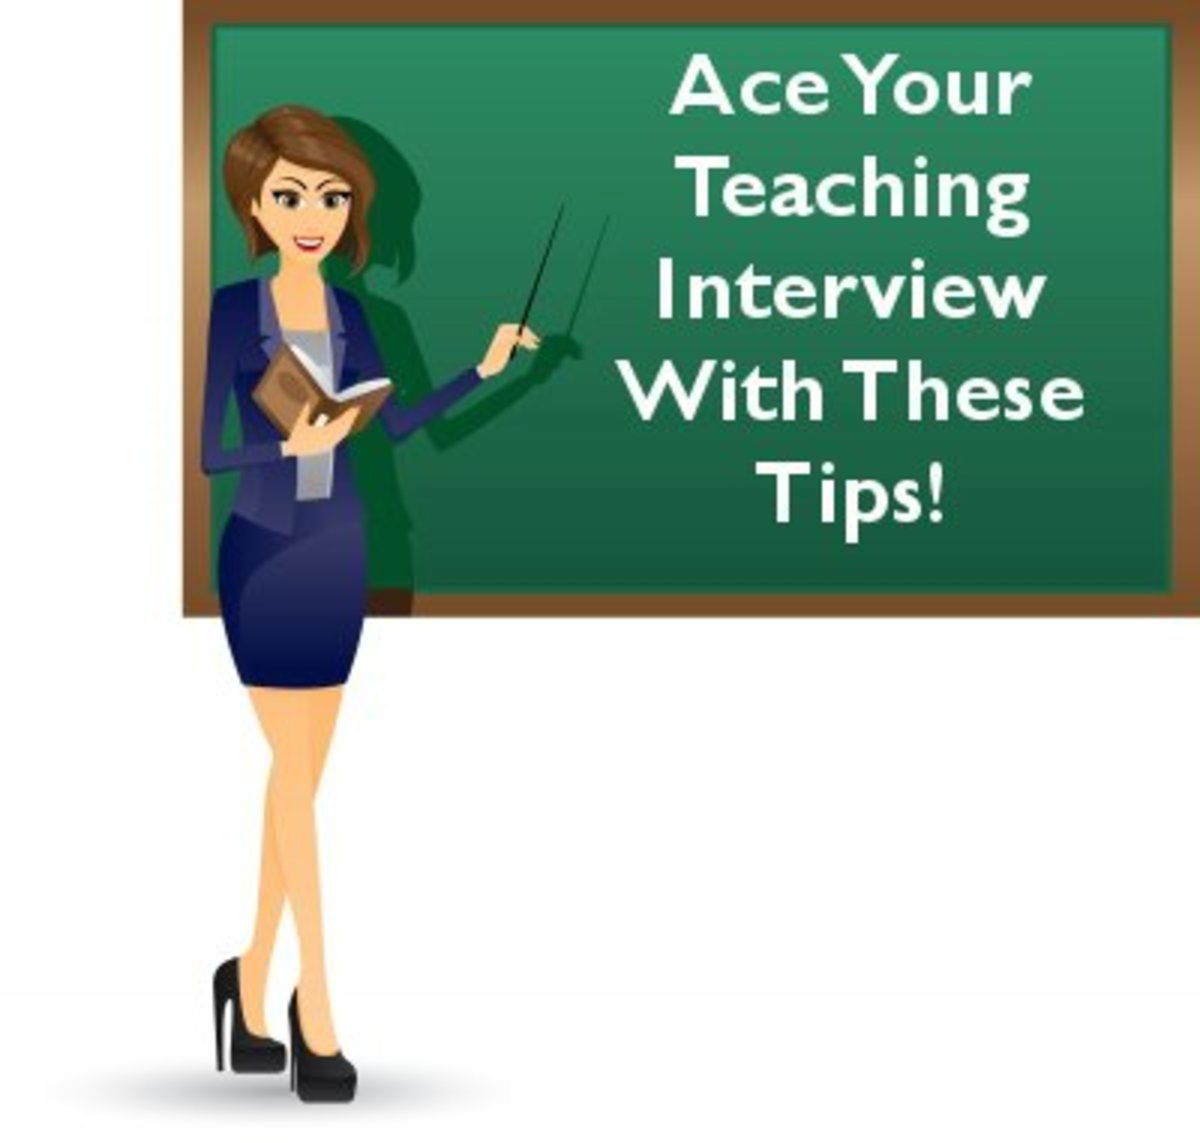 Ace Your Teaching Interview!